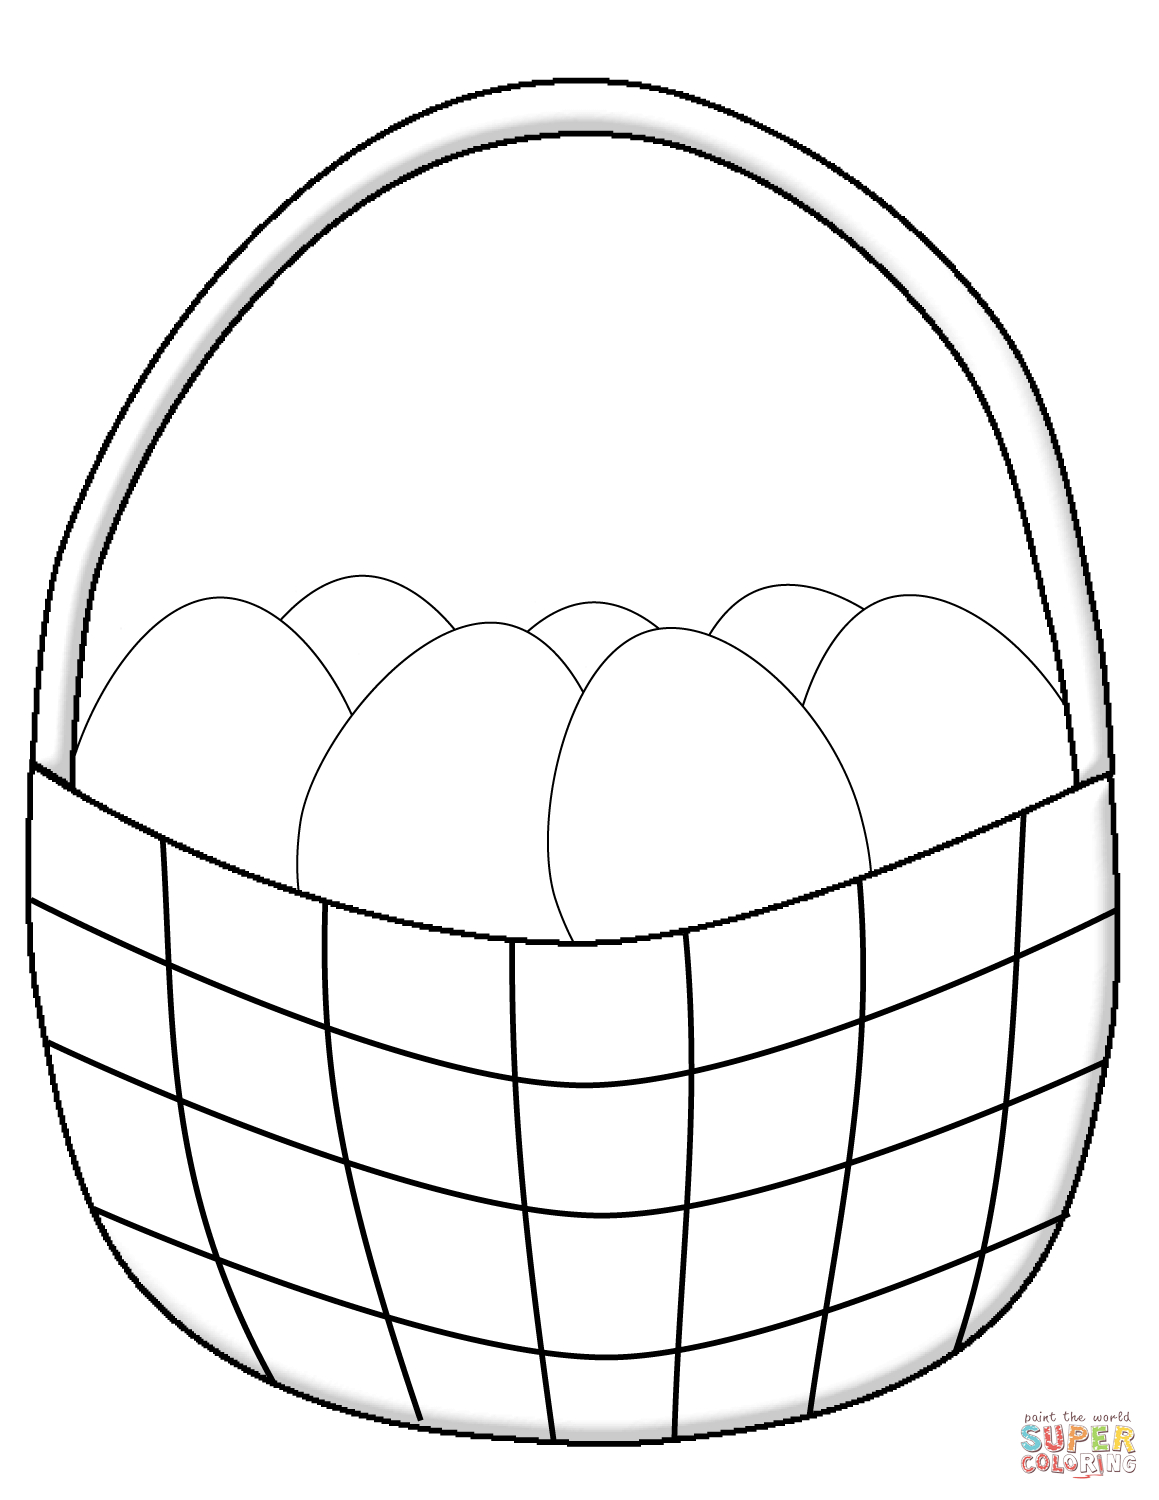 Easter Basket Coloring Pages | Free Printable Pictures - Free Printable Coloring Pages Easter Basket